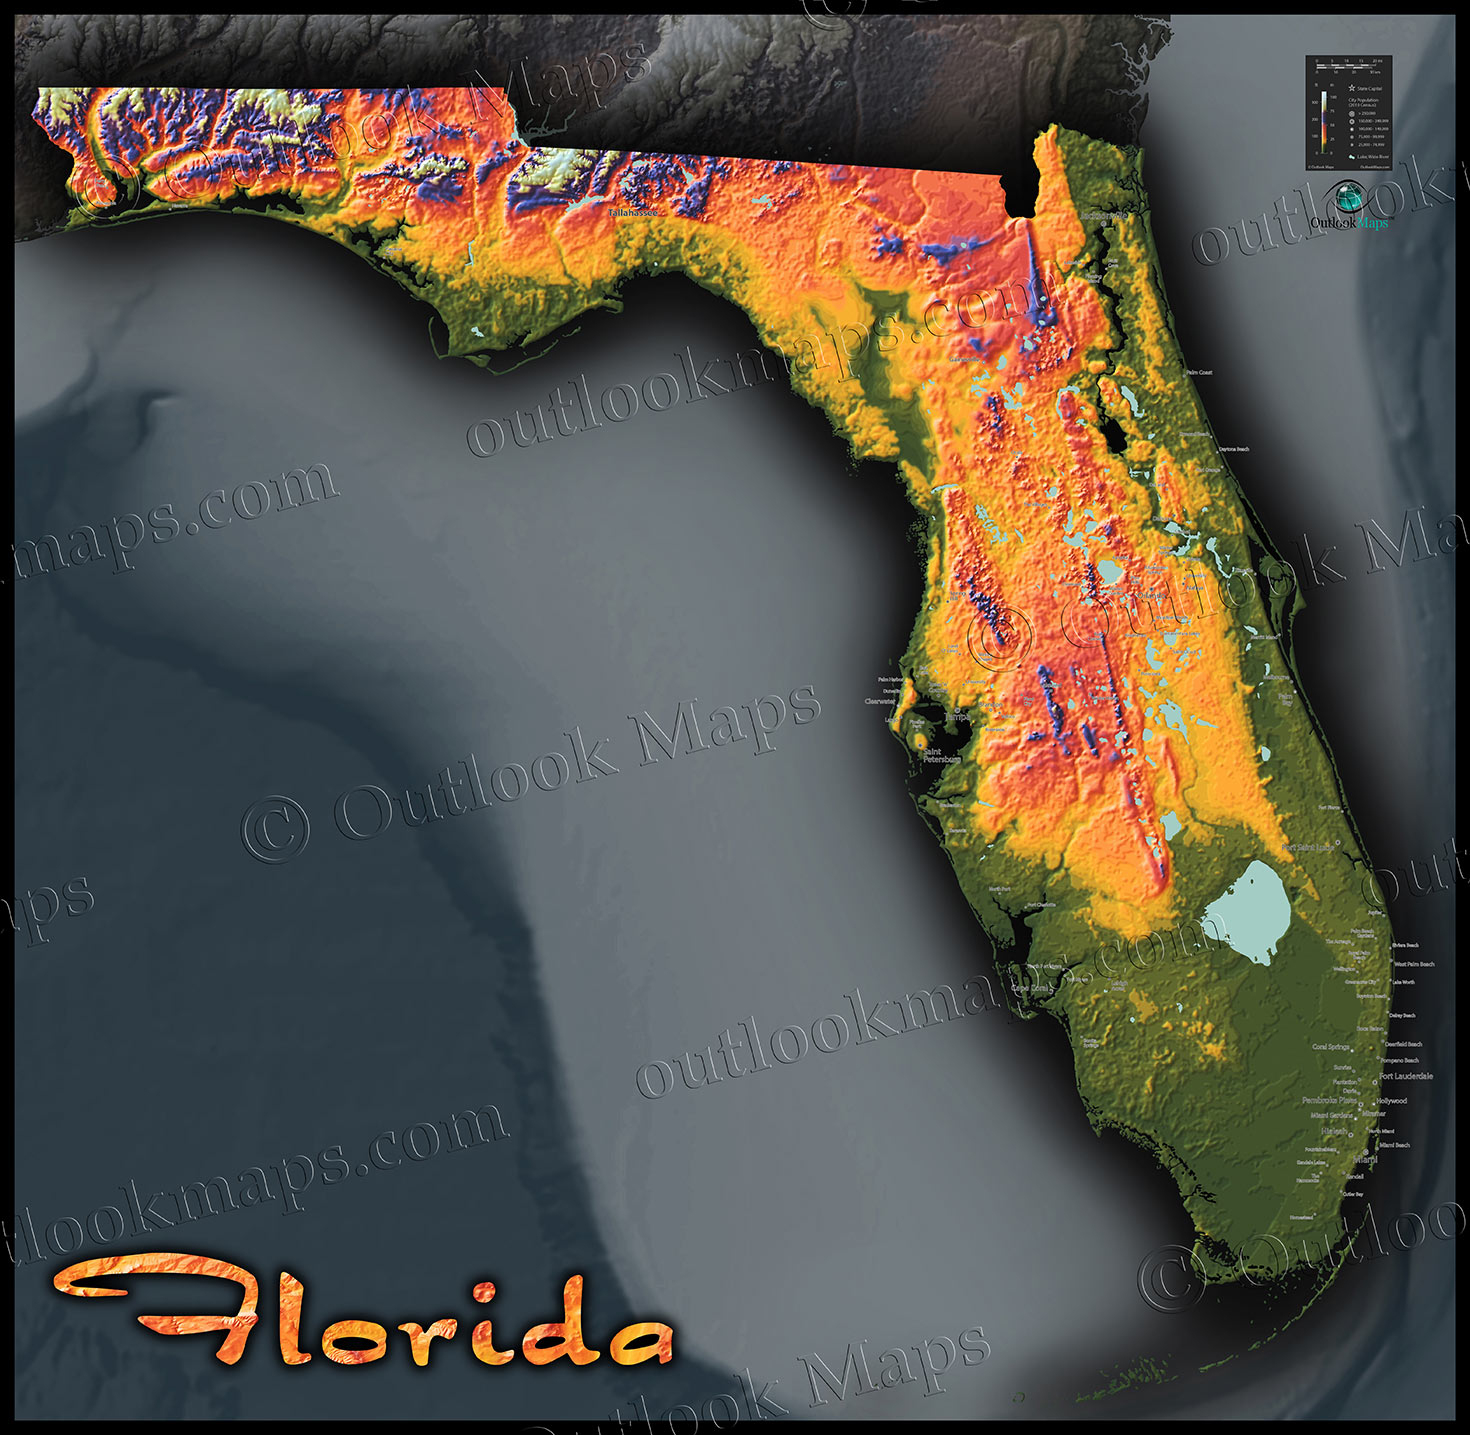 Florida Topography Map | Colorful Natural Physical Landscape - South Florida Topographic Map